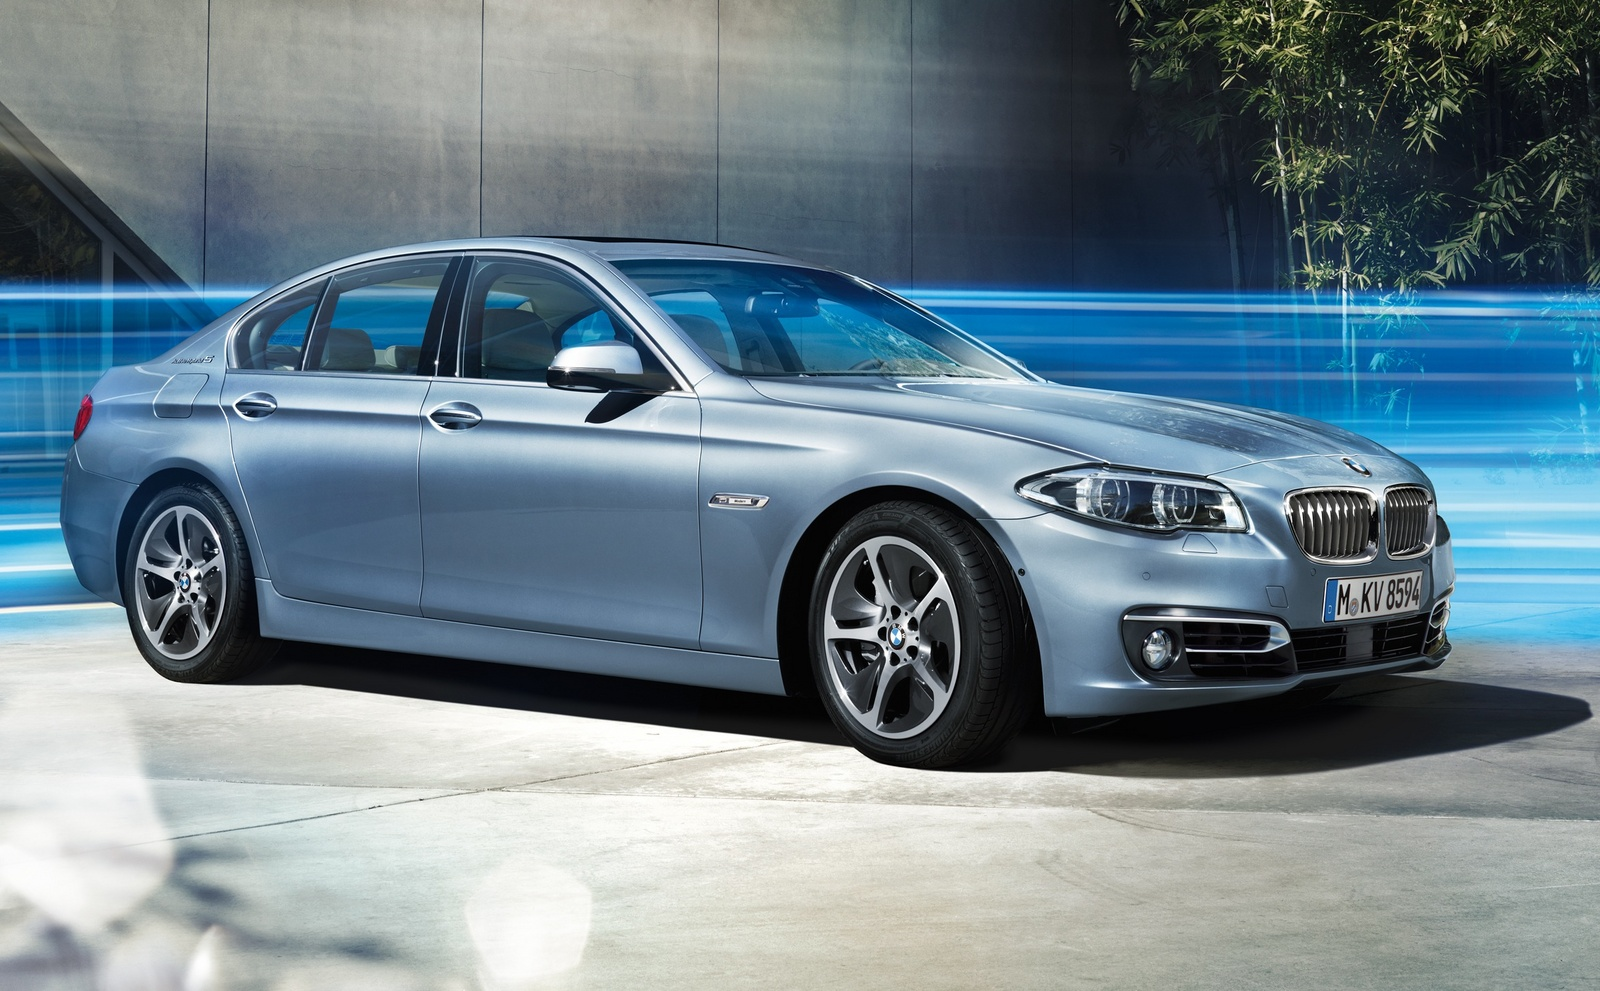 2014 Bmw Activehybrid 7 #4